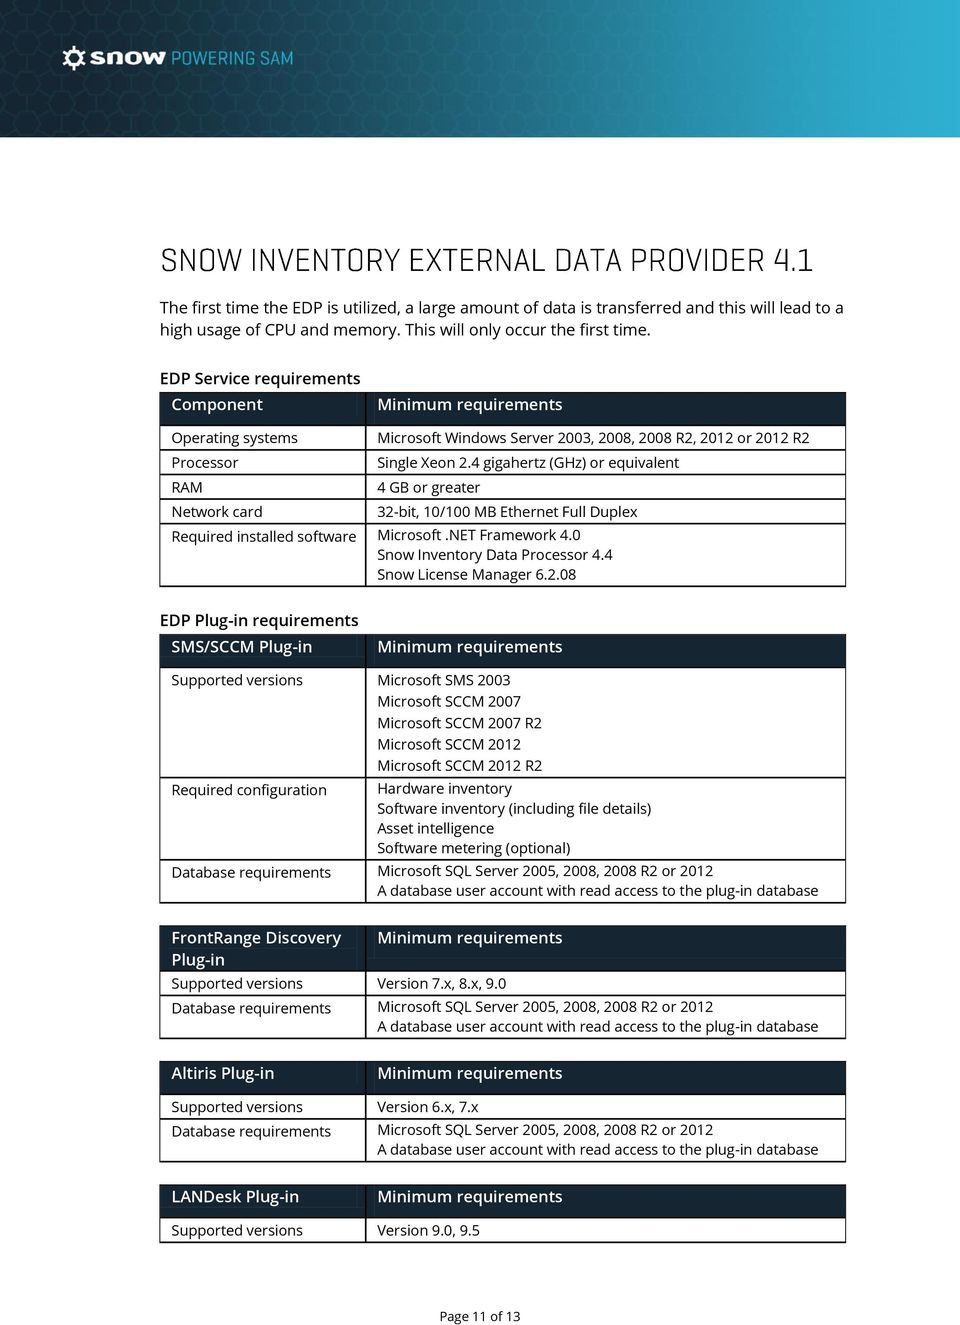 0 Snow Inventory Data Processor 4.4 Snow License Manager 6.2.